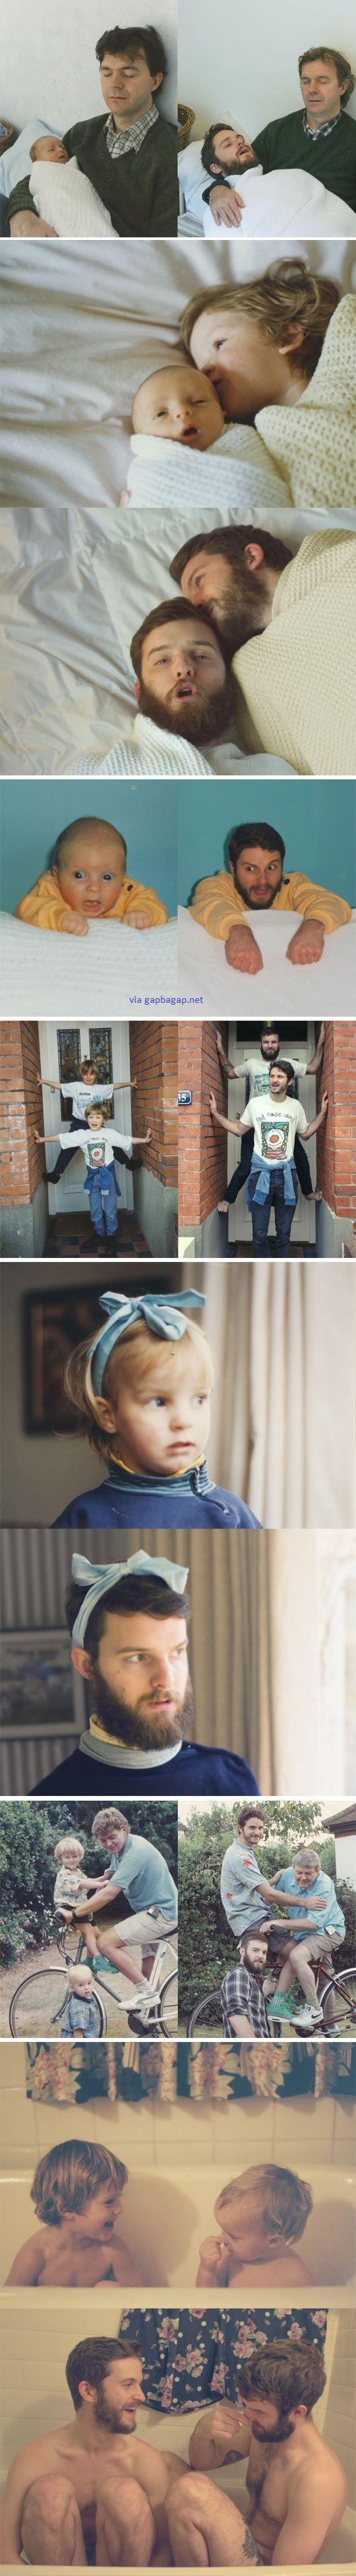 Funny Pictures Of Dad vs Son LOL